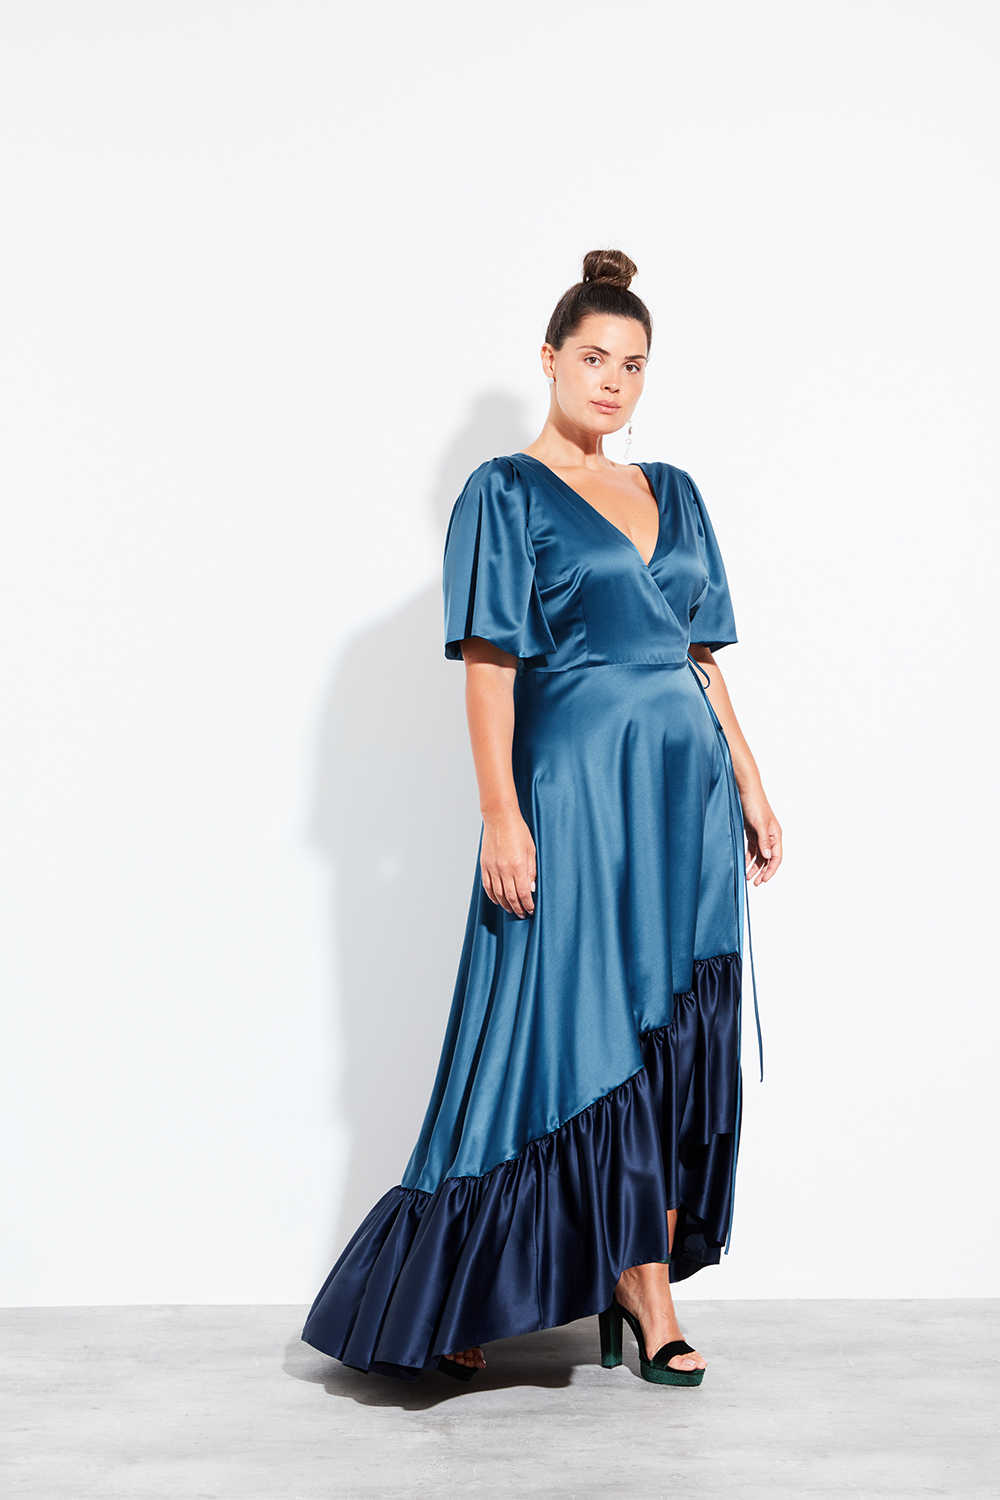 Halfpenny London Sister Bridesmaid Collection Fox Dress in Navy Teal with Sleeves